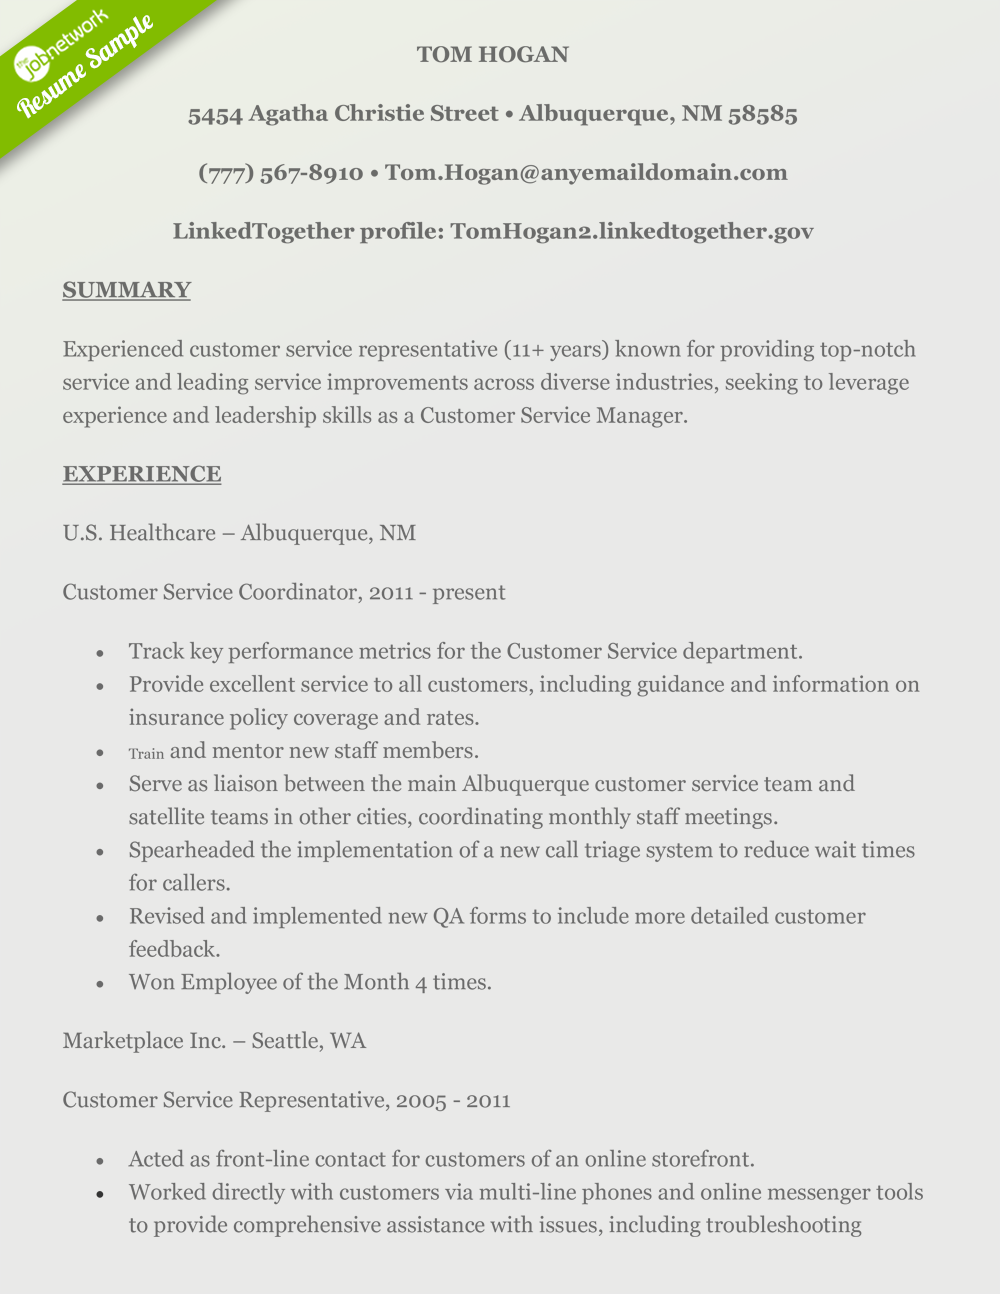 Customer Service Resume For Managers